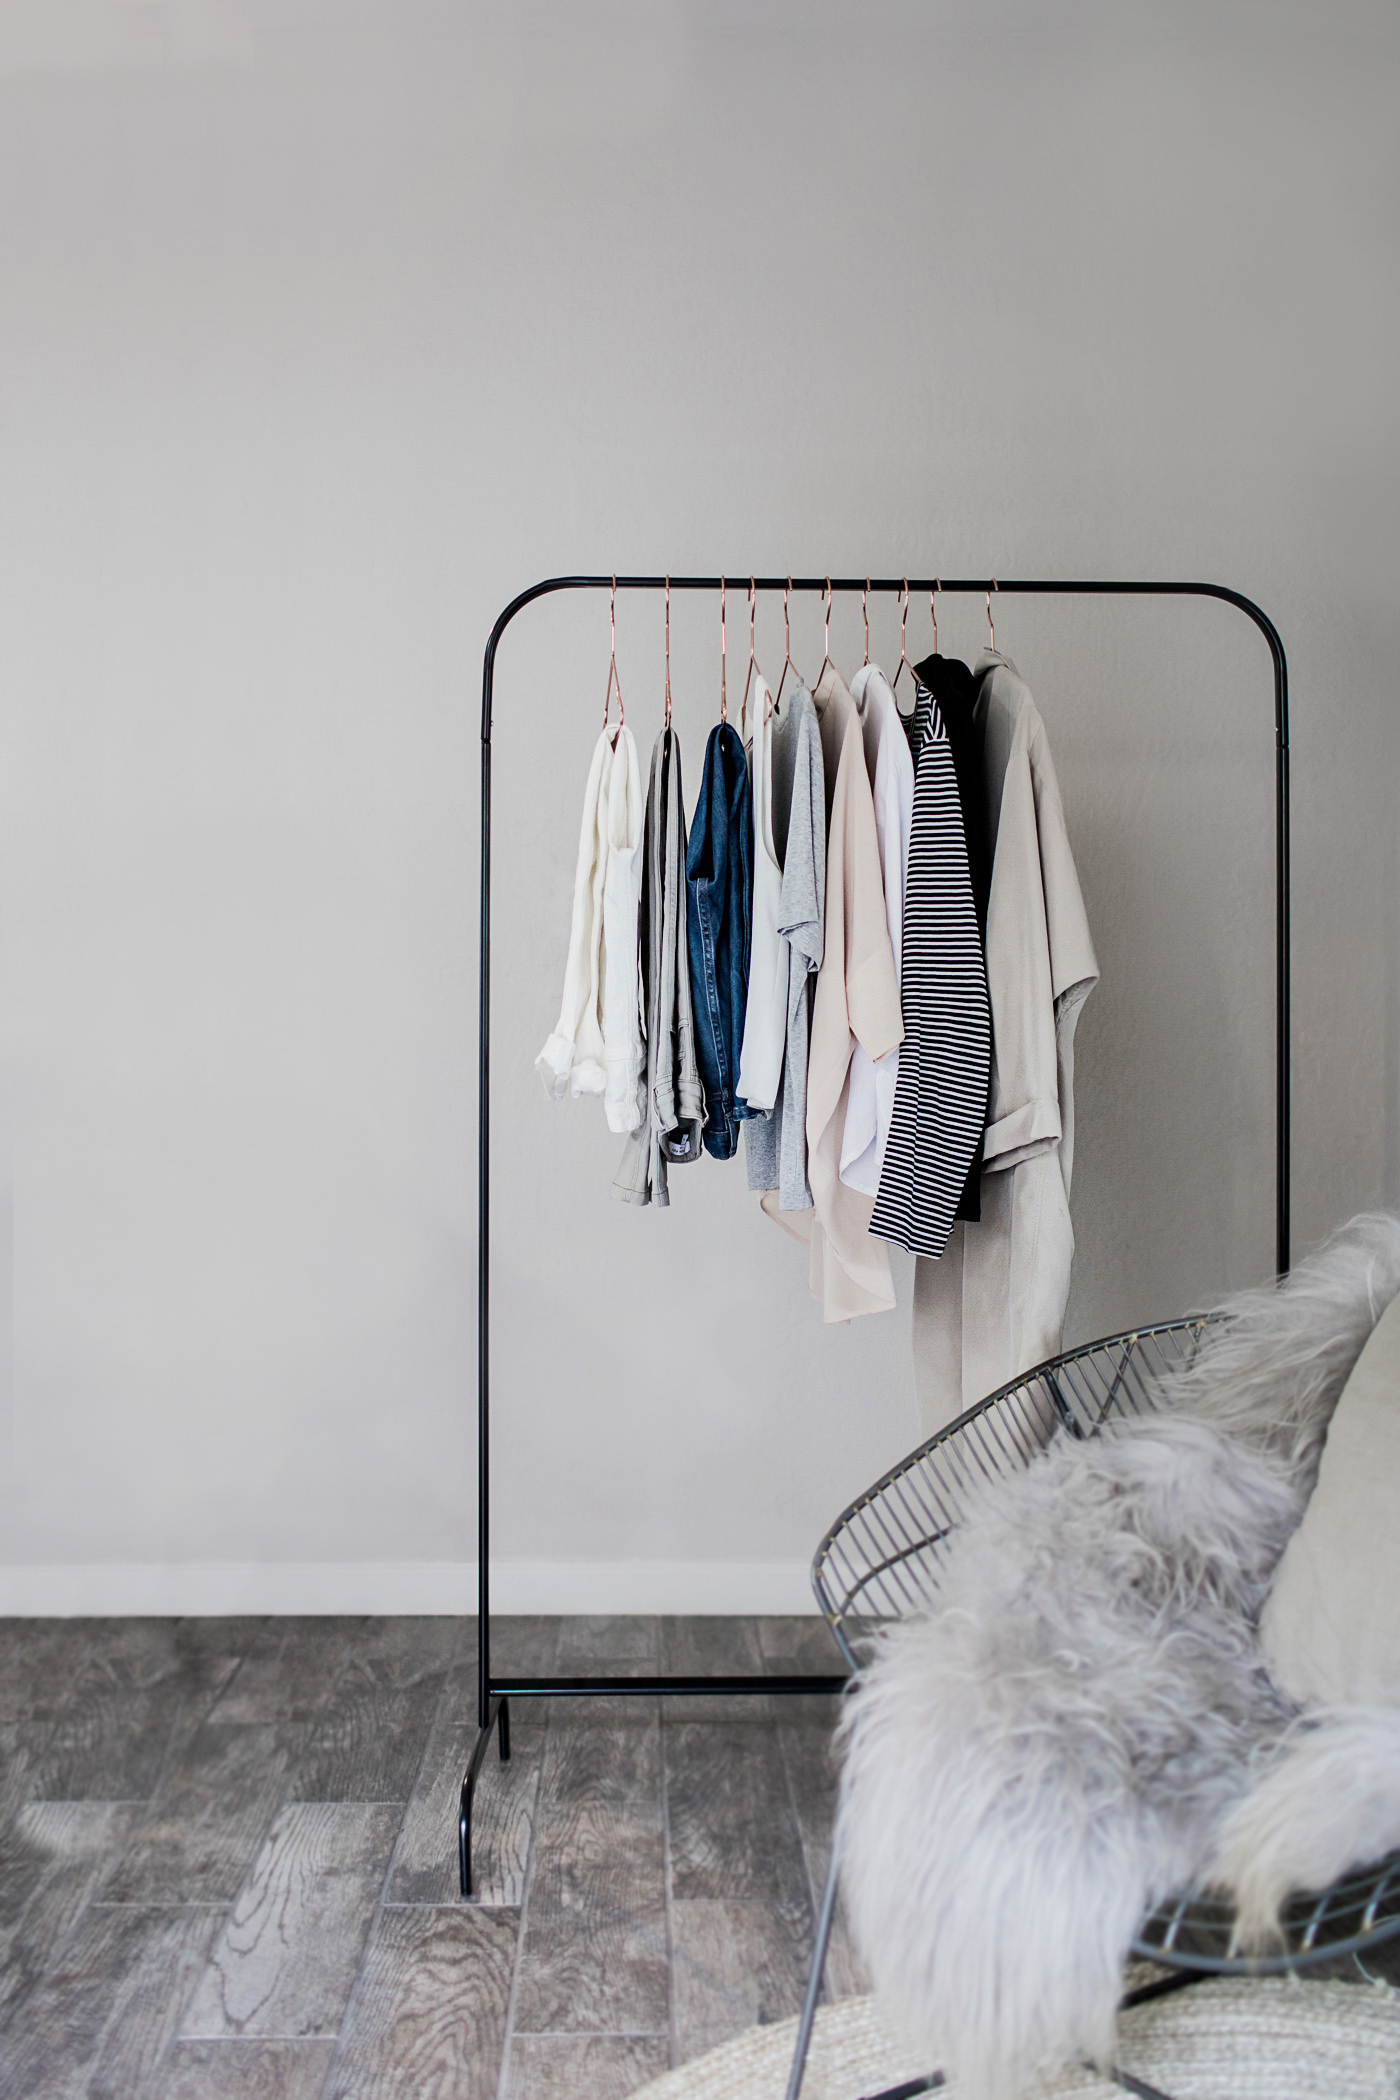 Charmant The Hanger Trick, A No Effort Way To Clean Out Your Closet!